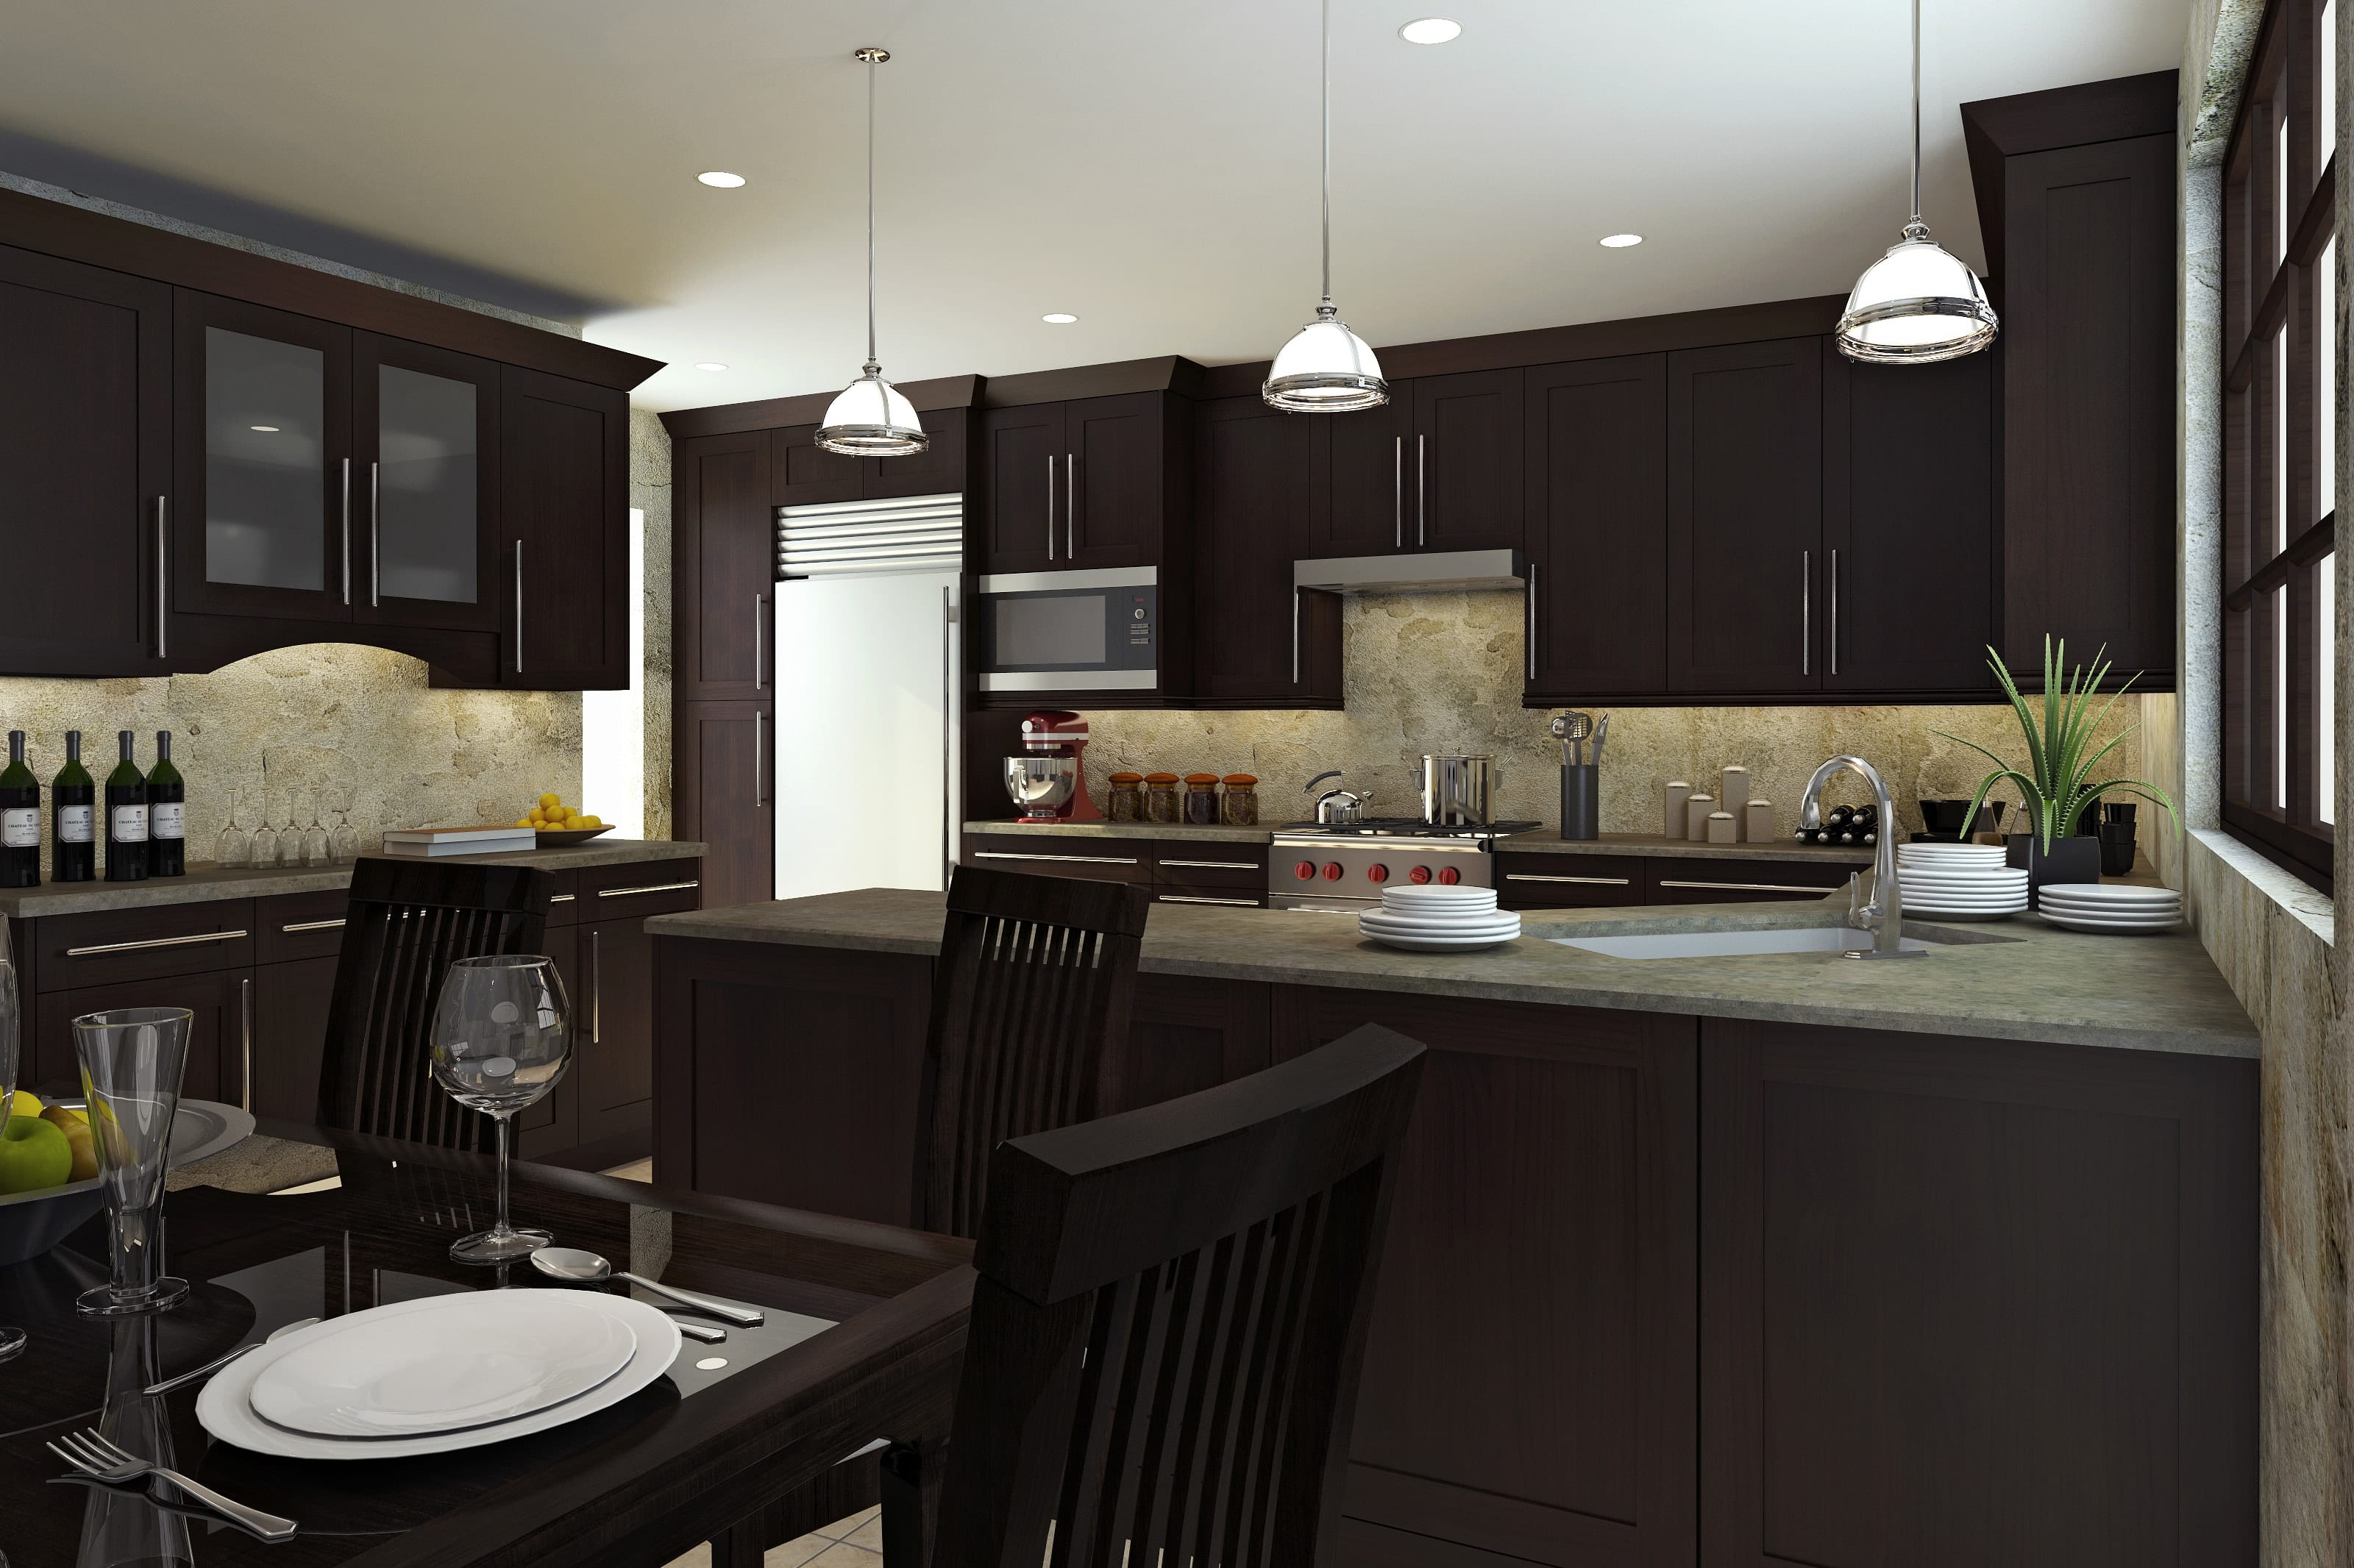 Creating The Ideal Kitchen And Bathroom On A Budget